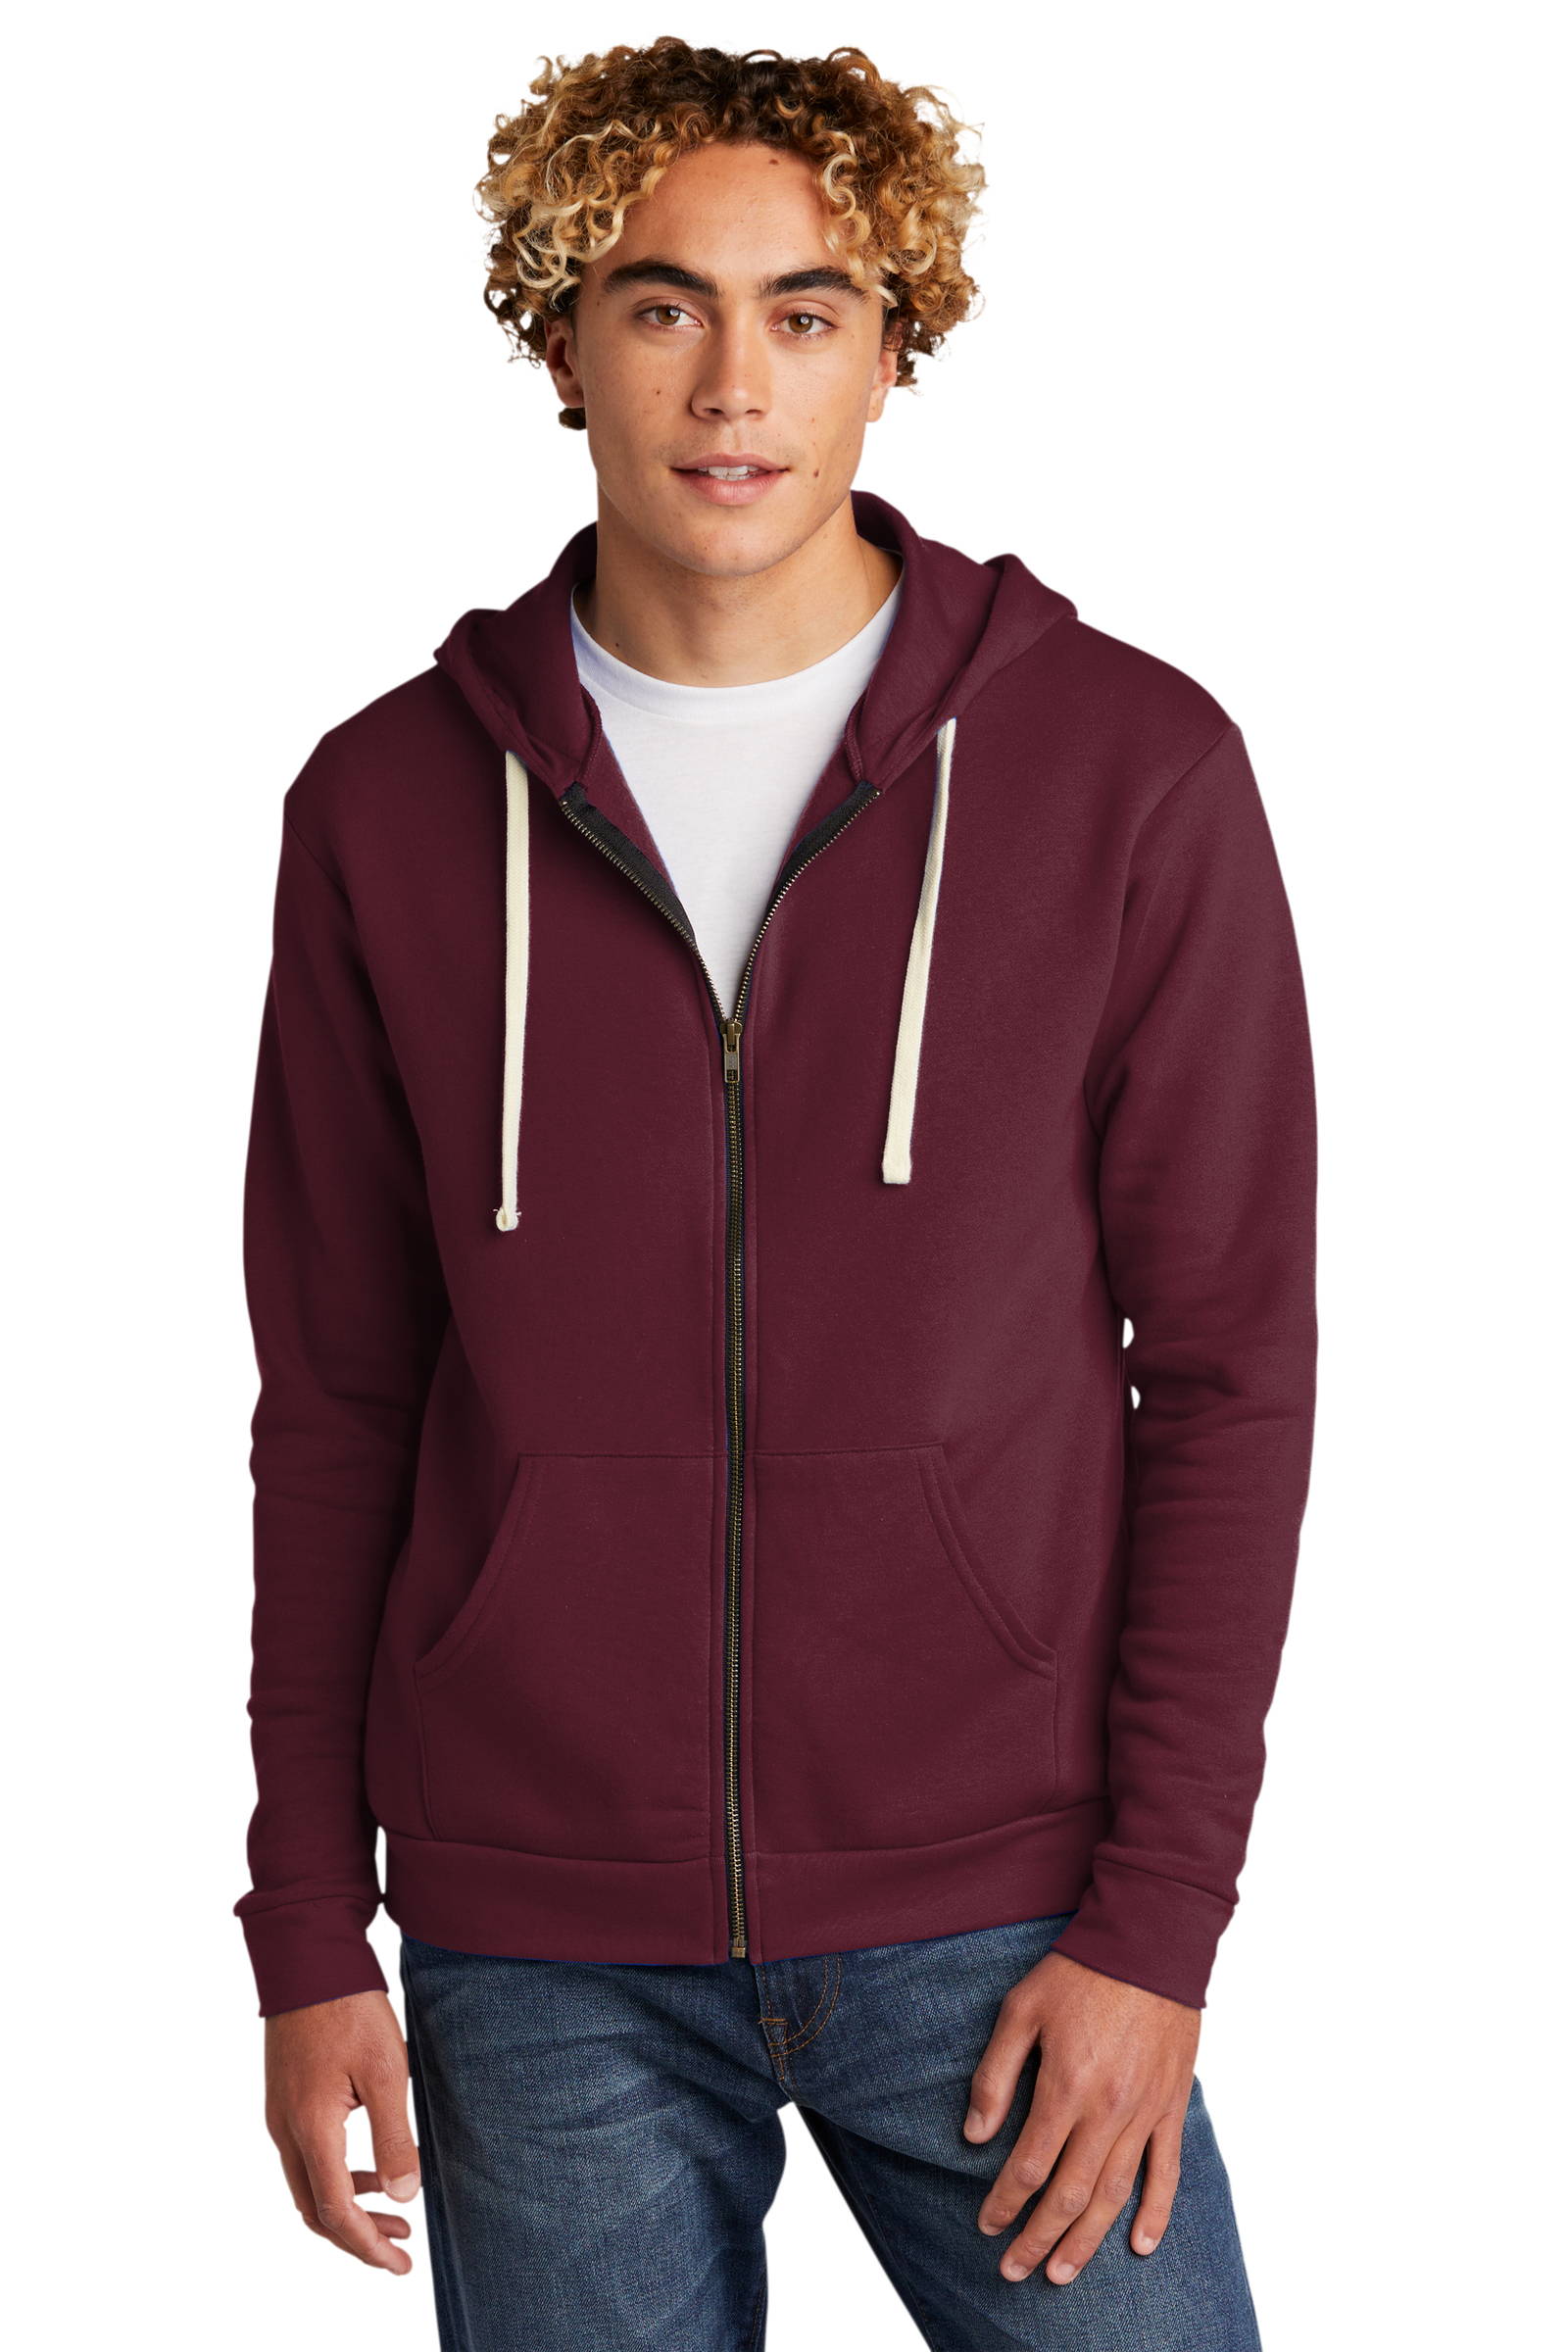 Next Level Embroidered Men's Beach Fleece Full-Zip Hoodie